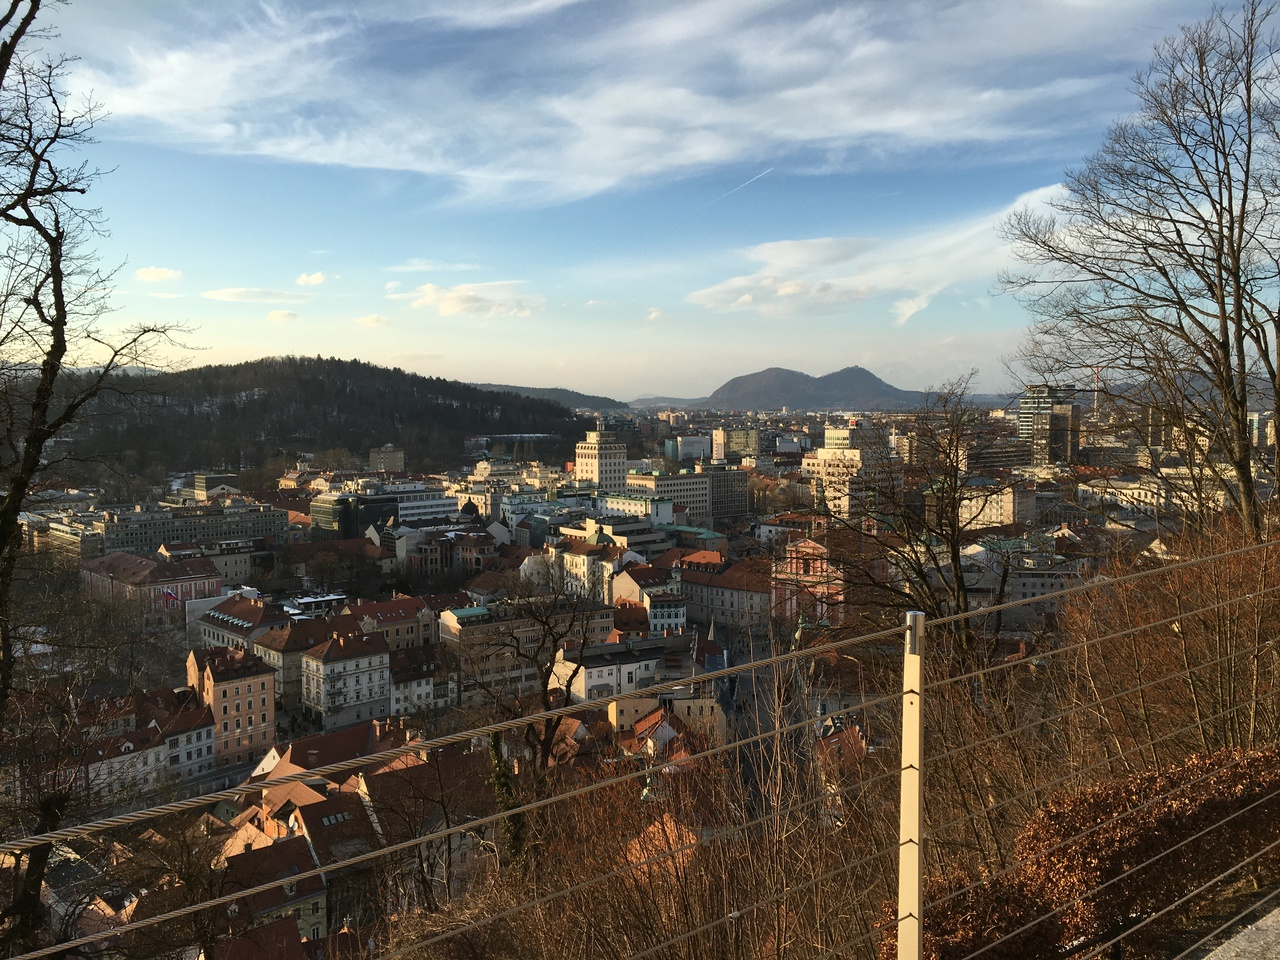 View of some part of Ljubljana, taken from the castle hill in the afternoon sun